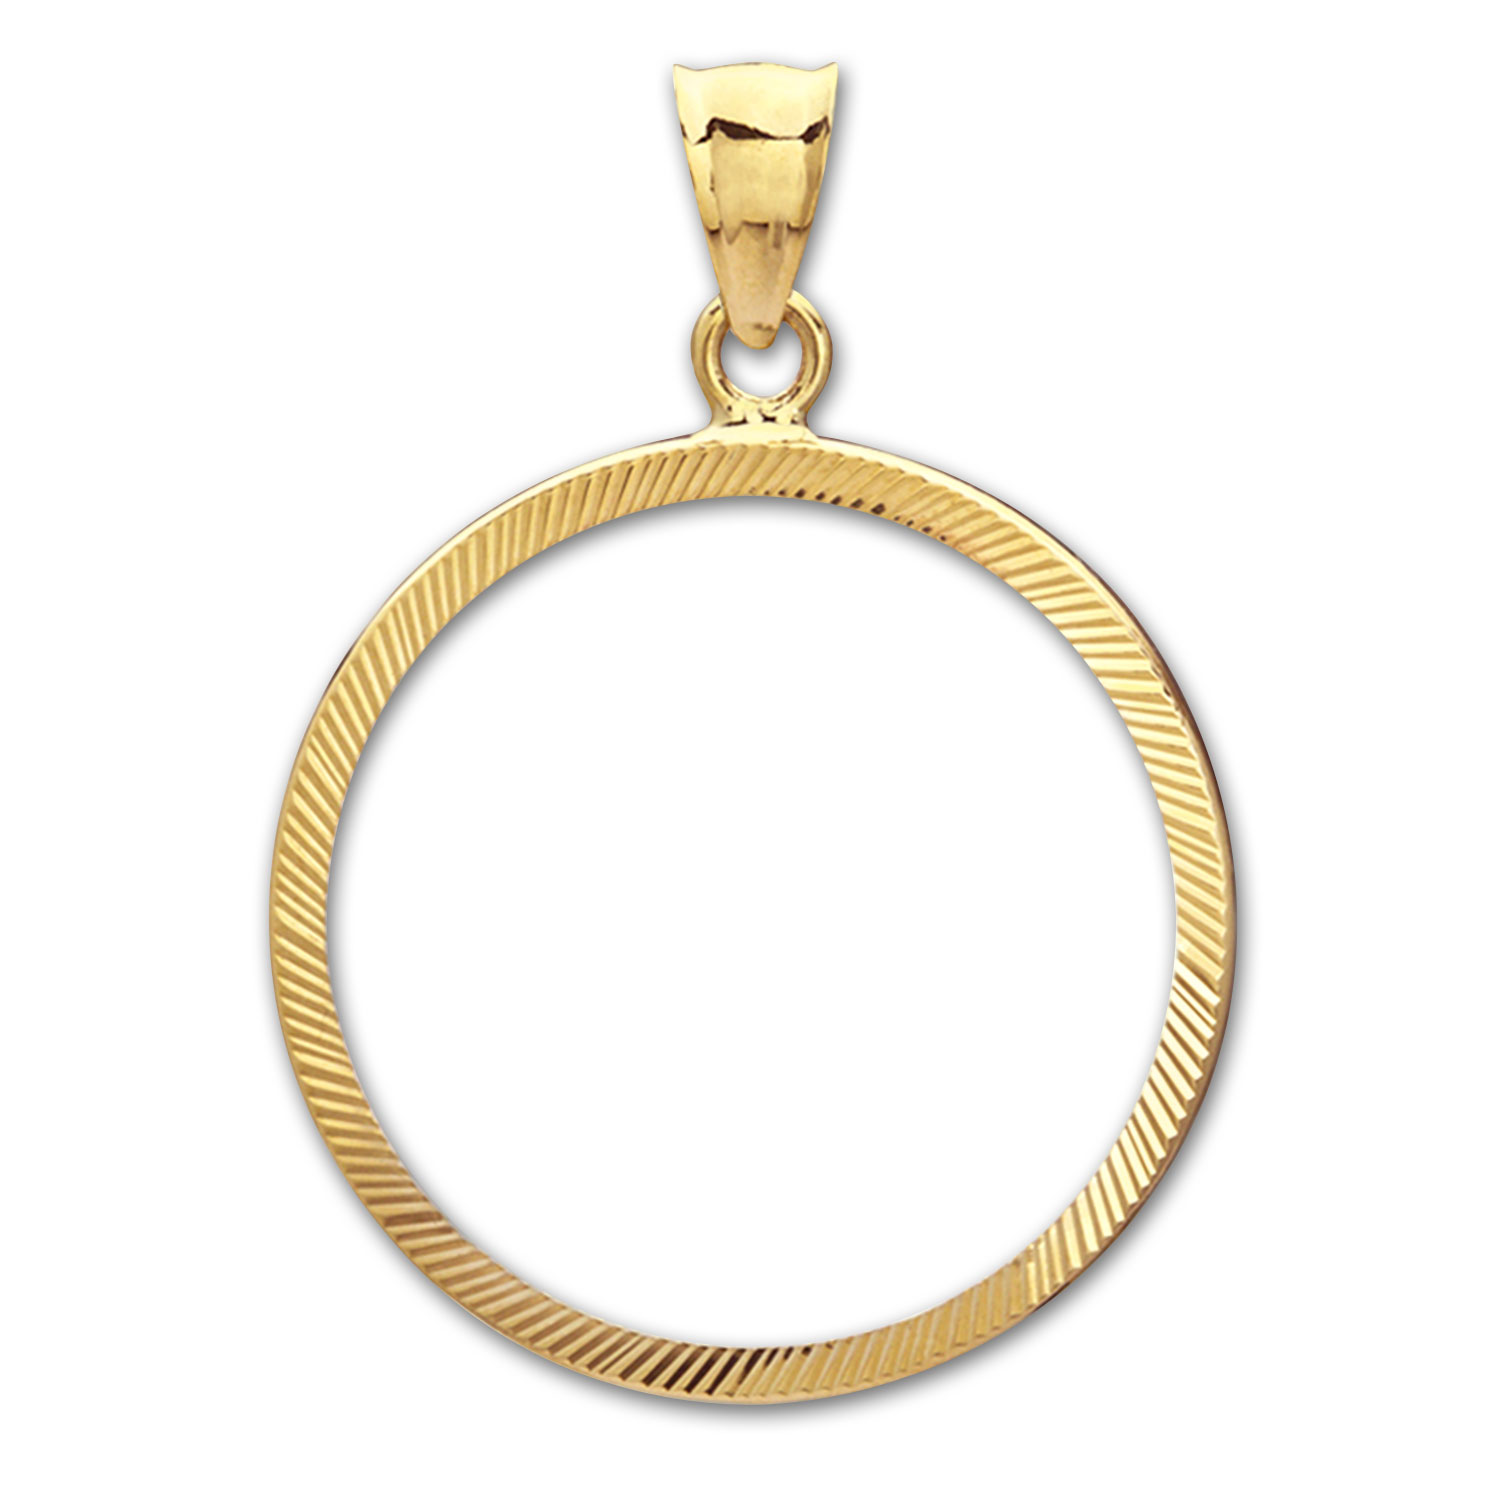 14K Gold Prong Diamond-Cut Coin Bezel - 22 mm